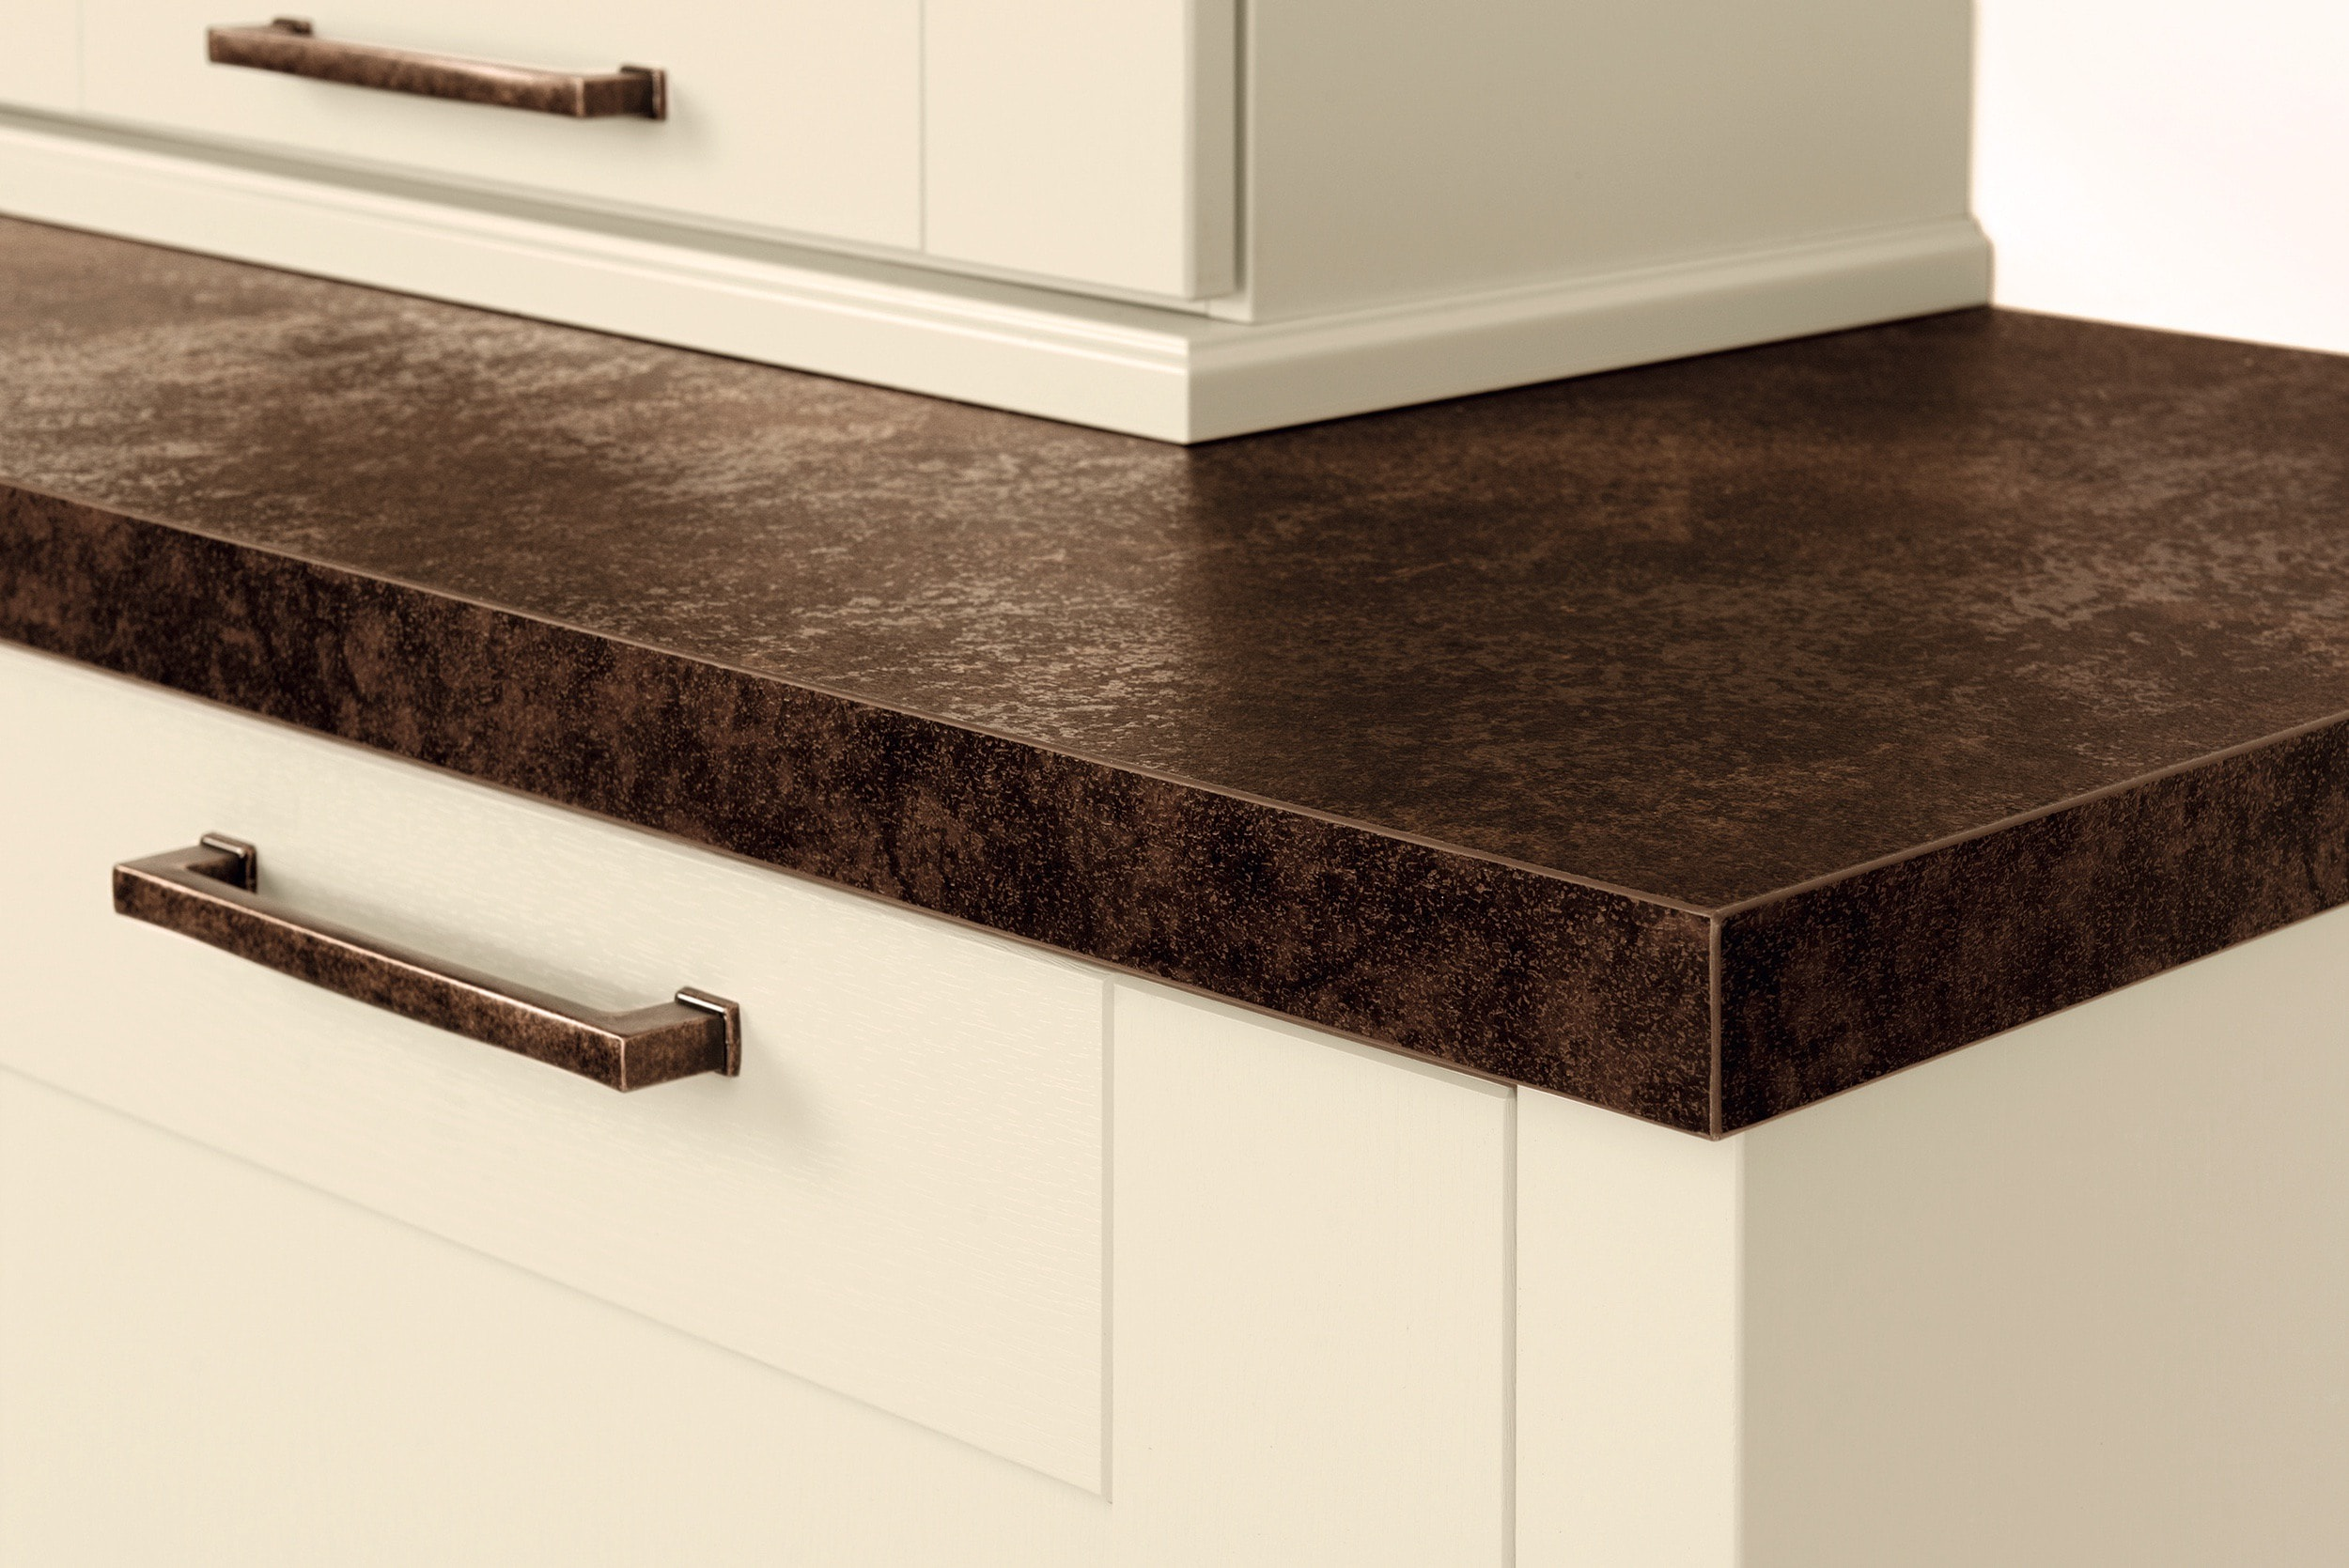 7.-Caledonia-laminate-worktop.jpg